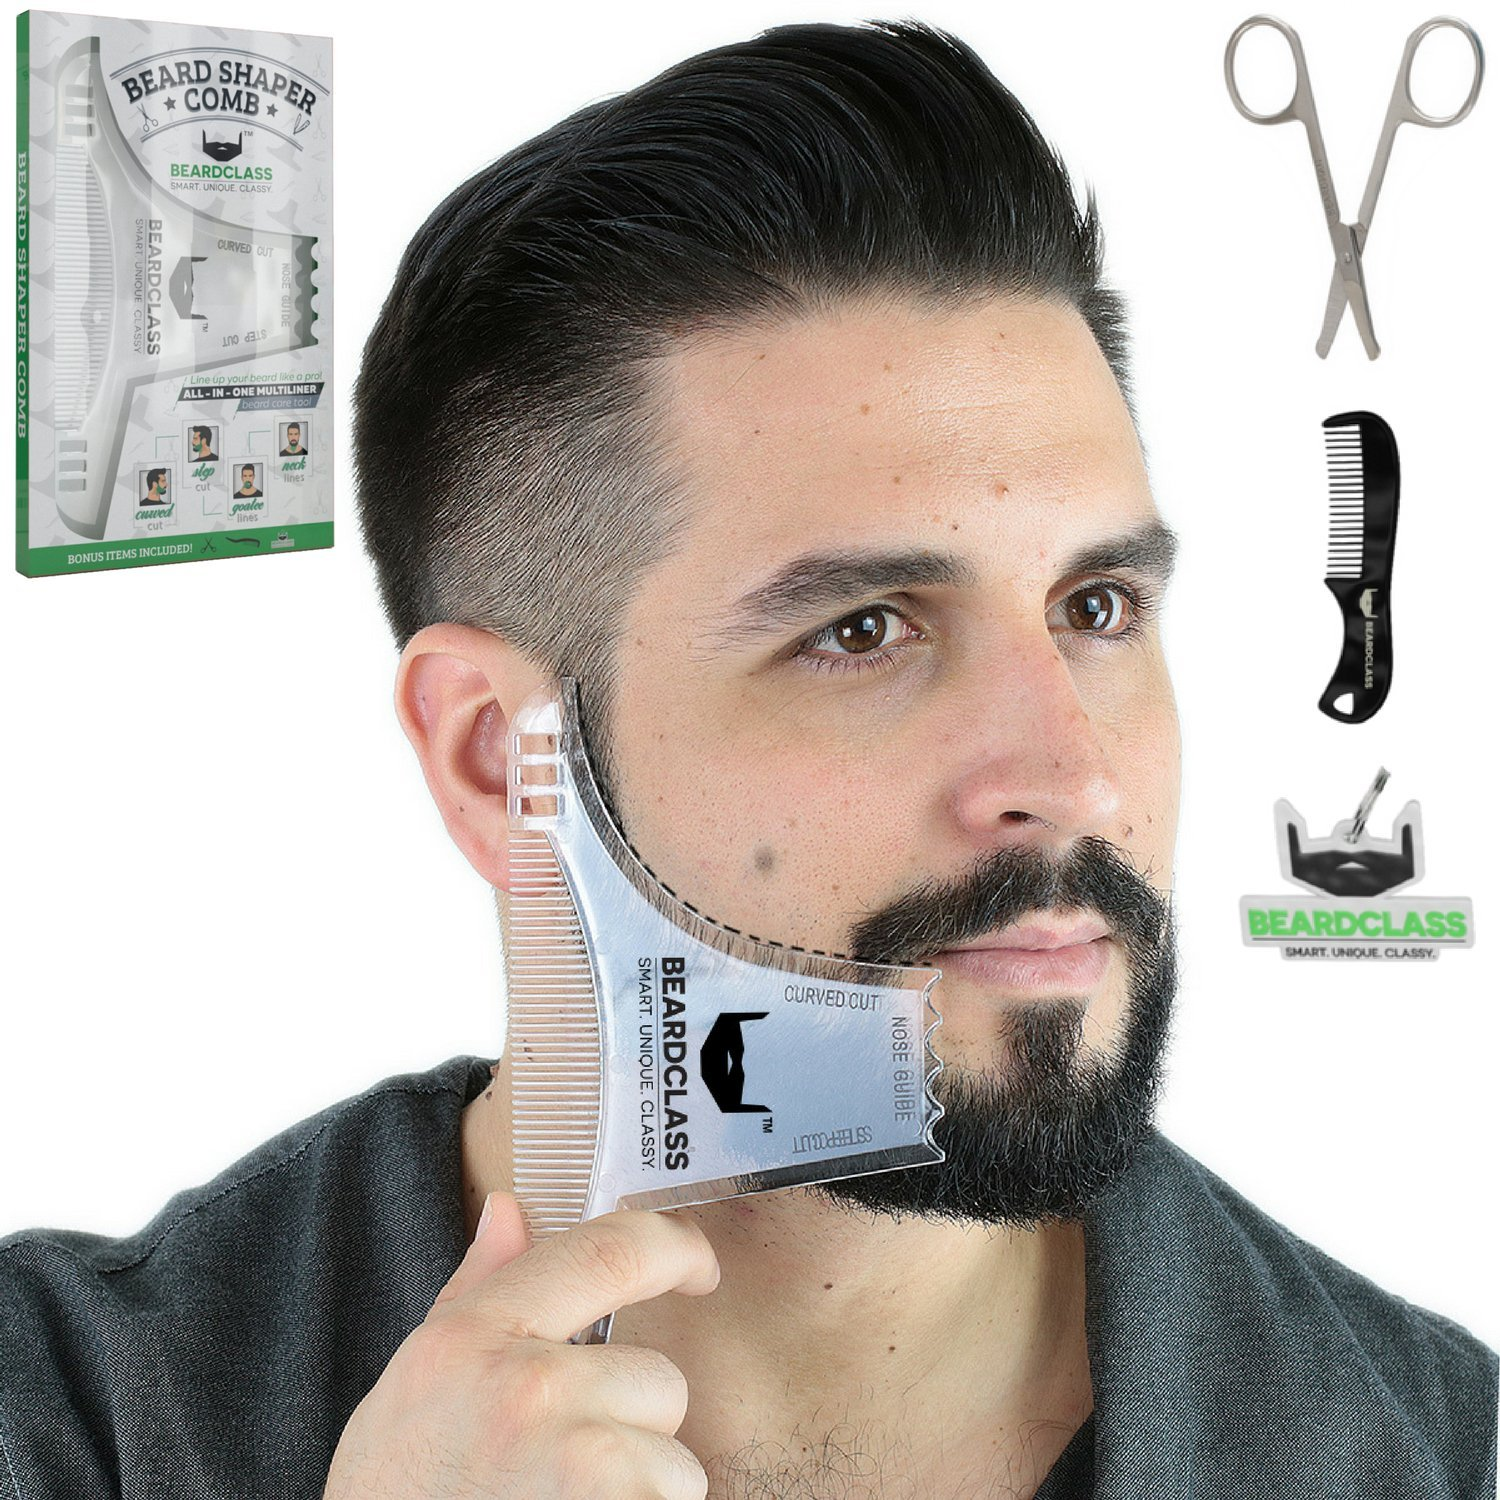 BEARDCLASS - Beard Shaping Tool - 6 in 1 Comb Multi-liner Beard Shaper Template Comb Kit Transparent - Bonus Items Included - Works with any Beard Razor Electric Trimmers or Clippers - (Clear)